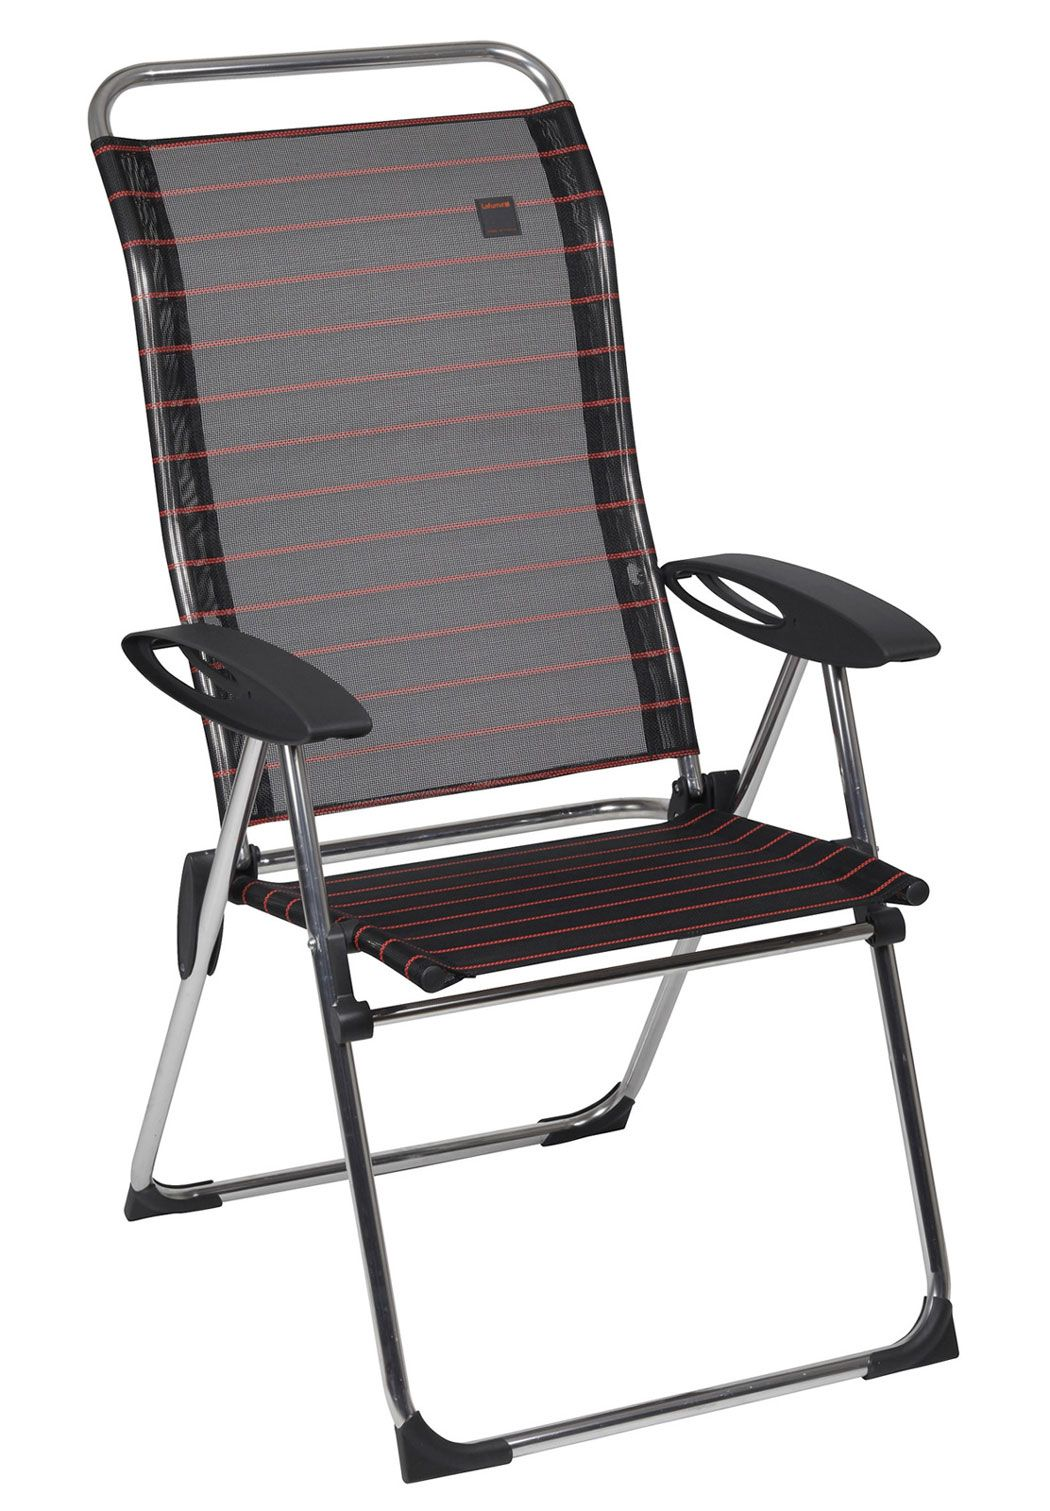 Lafuma Reclining Chair Beachmall Com 79 90 Outdoor Recliner Outdoor Chairs Zero Gravity Recliner